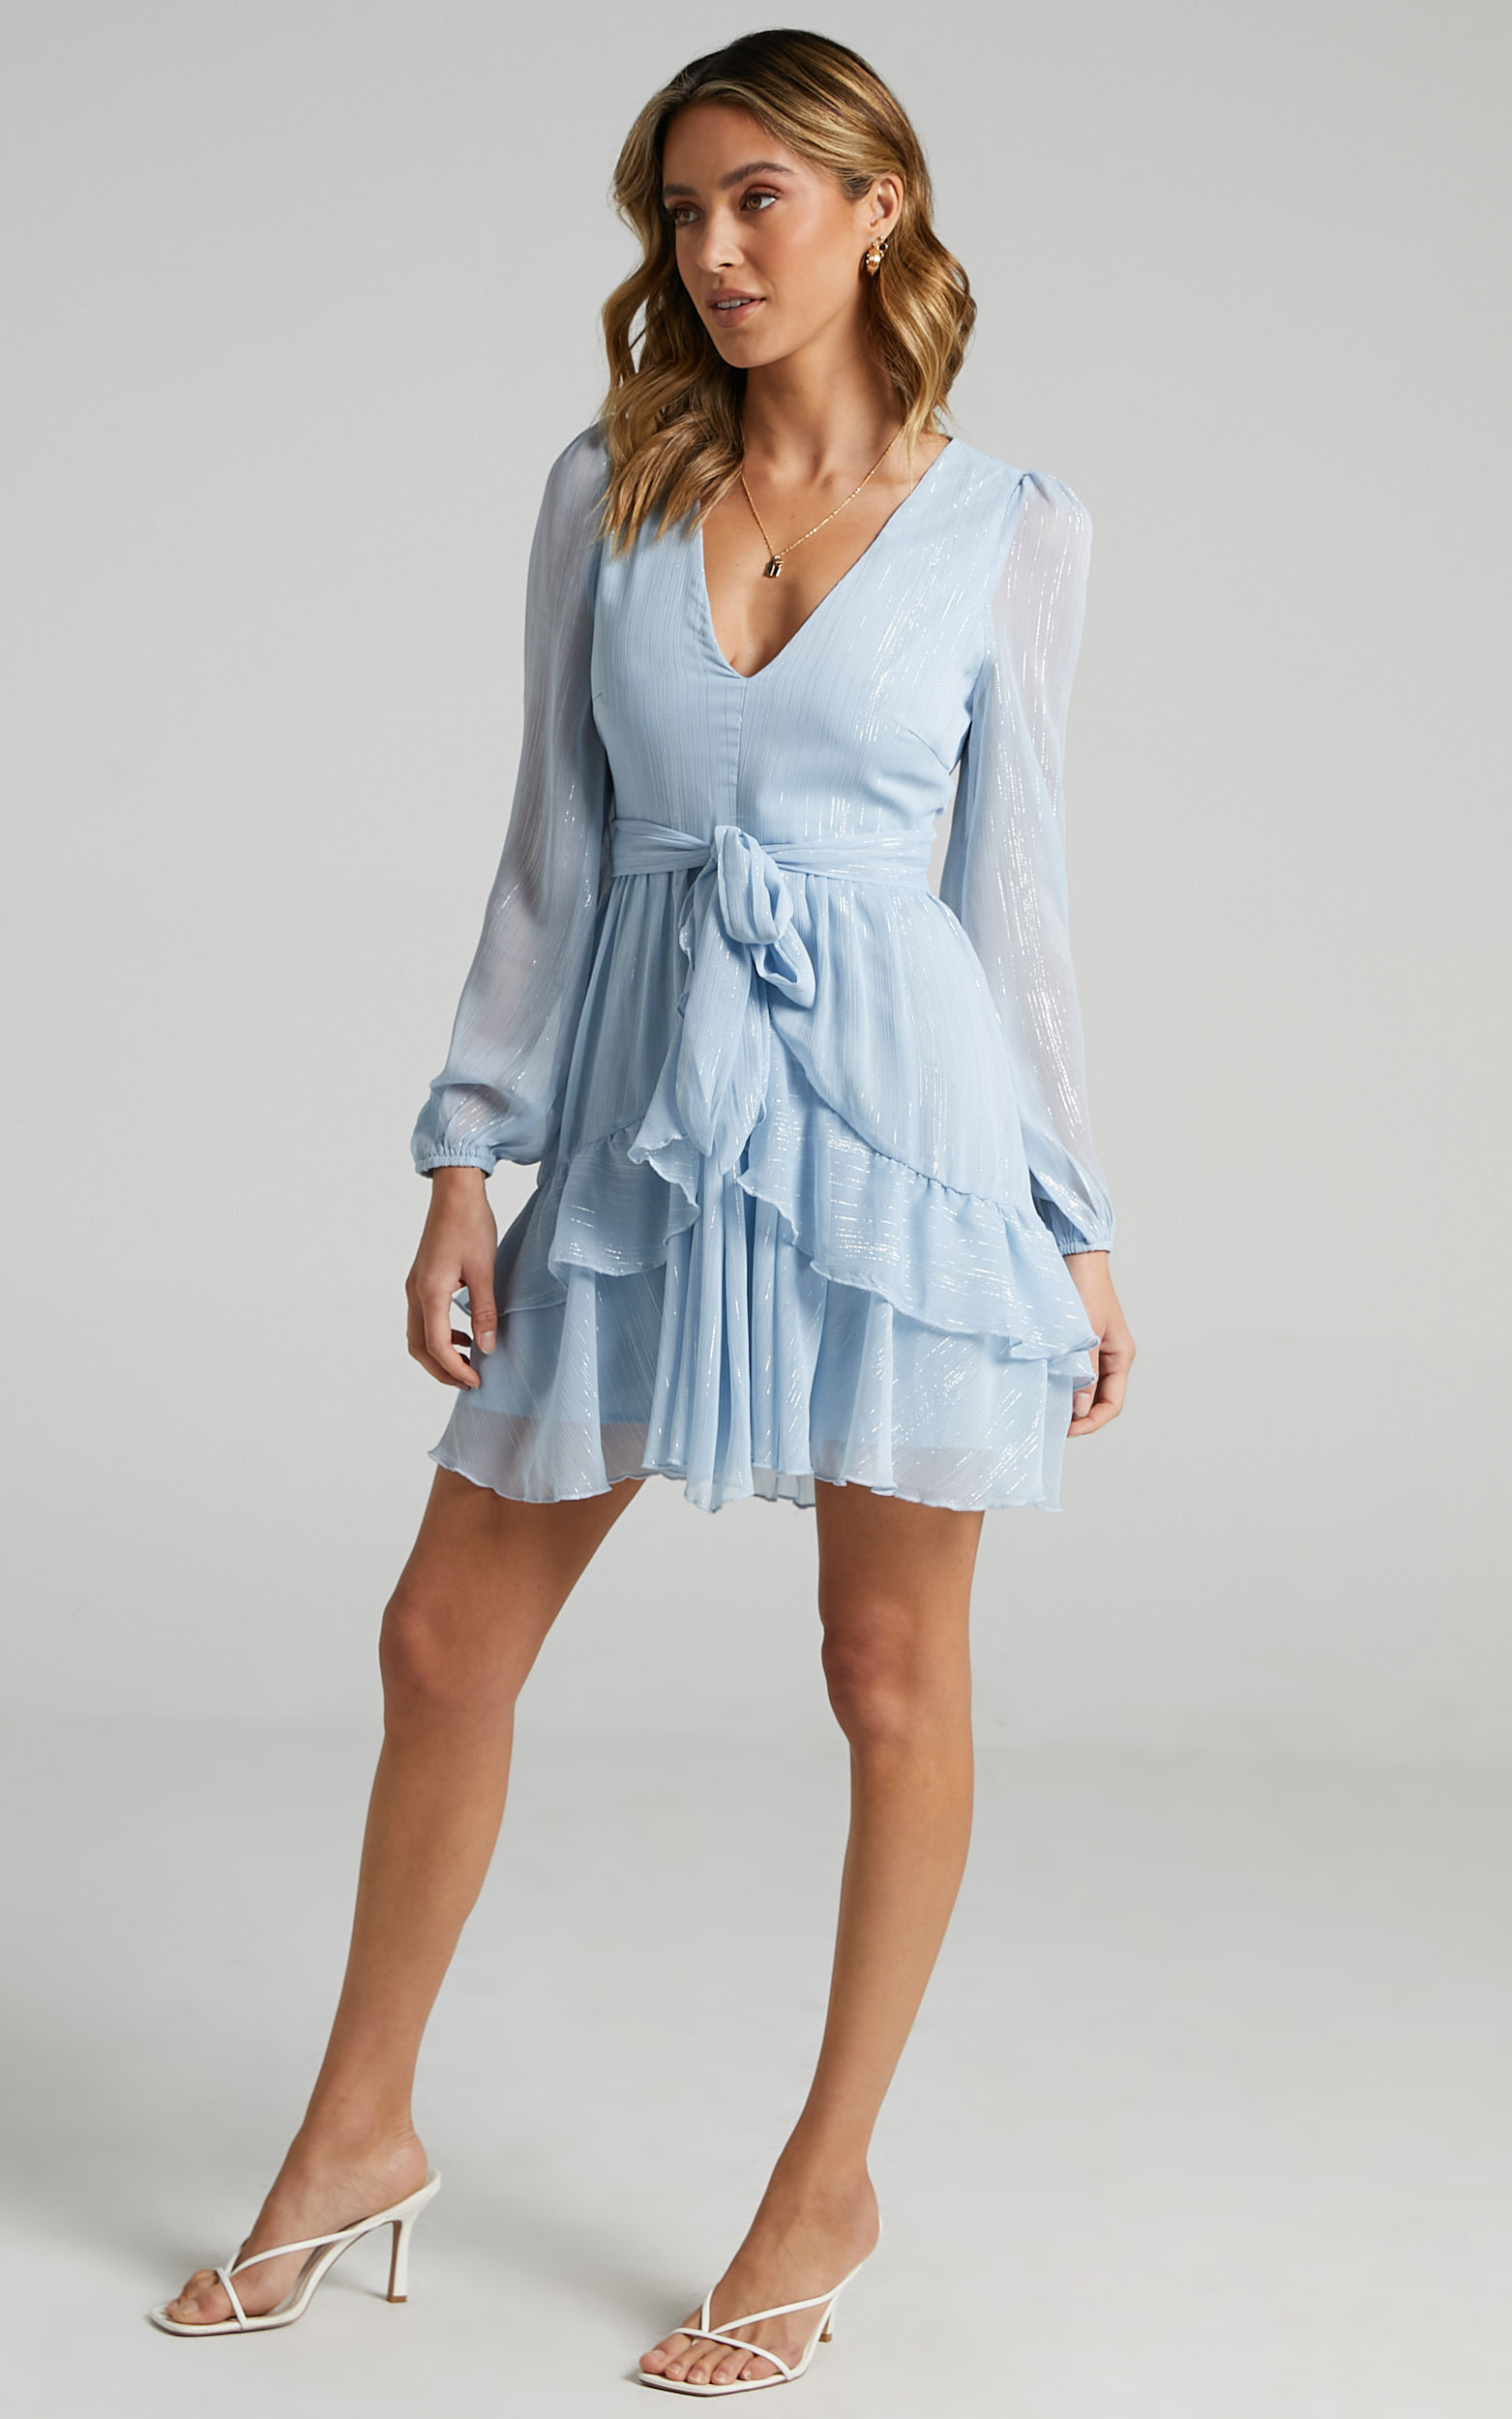 Eyes That Know Me Long Sleeve Ruffle Mini Dress in Powder Blue - 06, BLU4, hi-res image number null